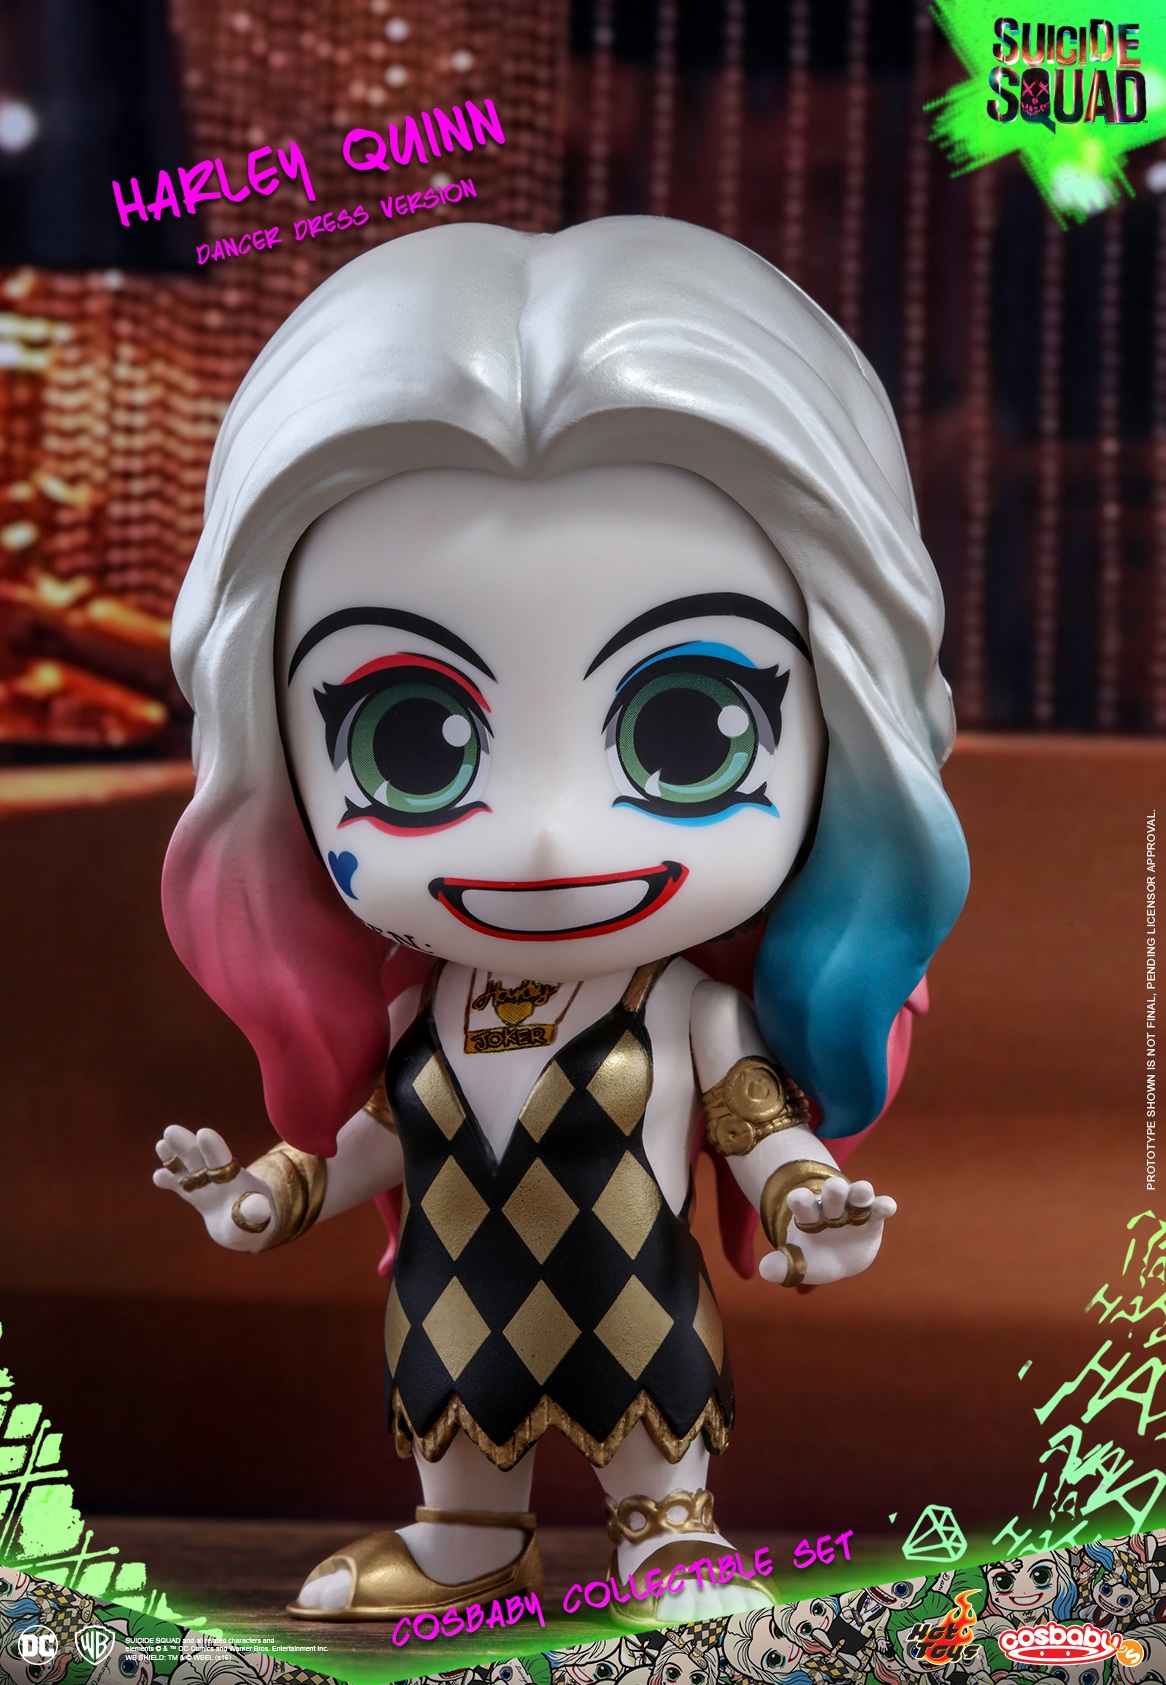 Teenage Mutant Ninja Turtles Toys : Hot toys suicide squad cosbaby s collectible sets